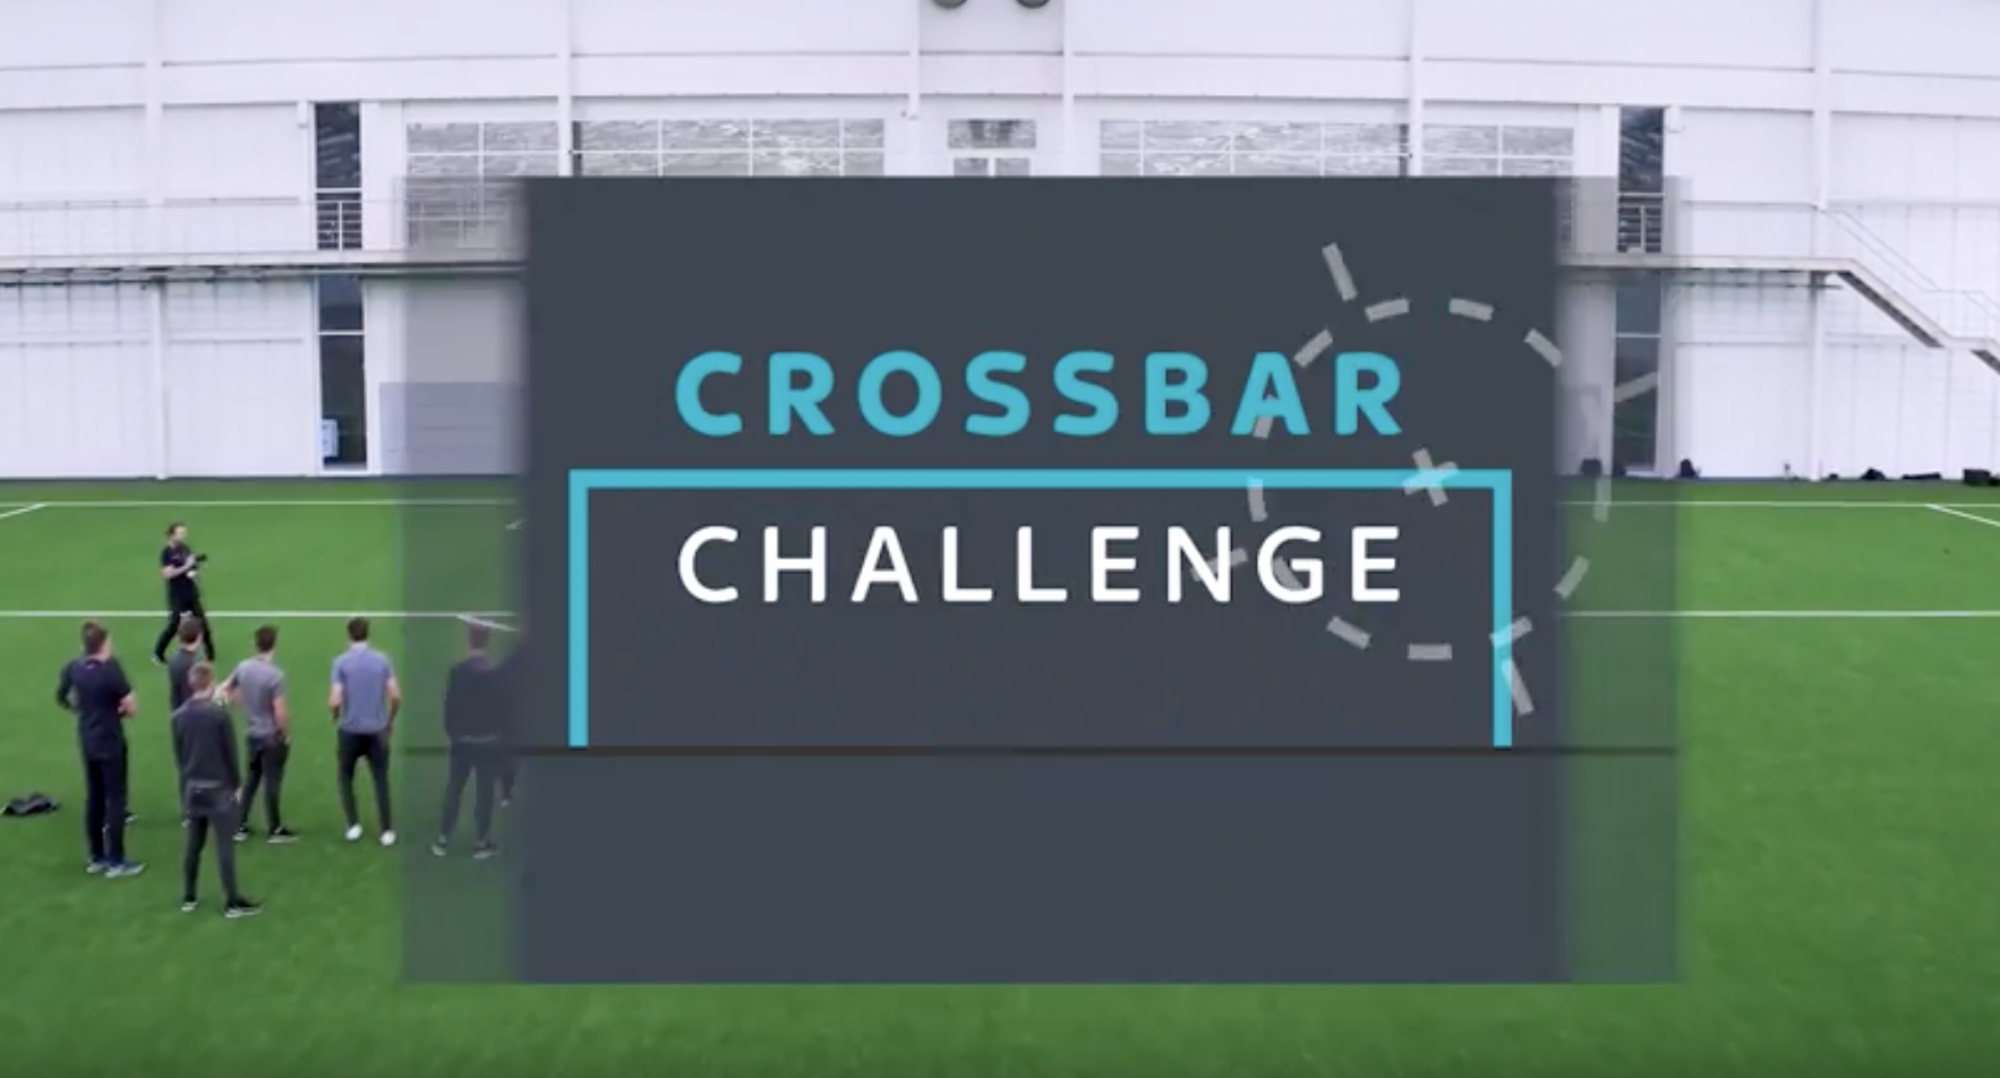 Team Sky Crossbar Challenge